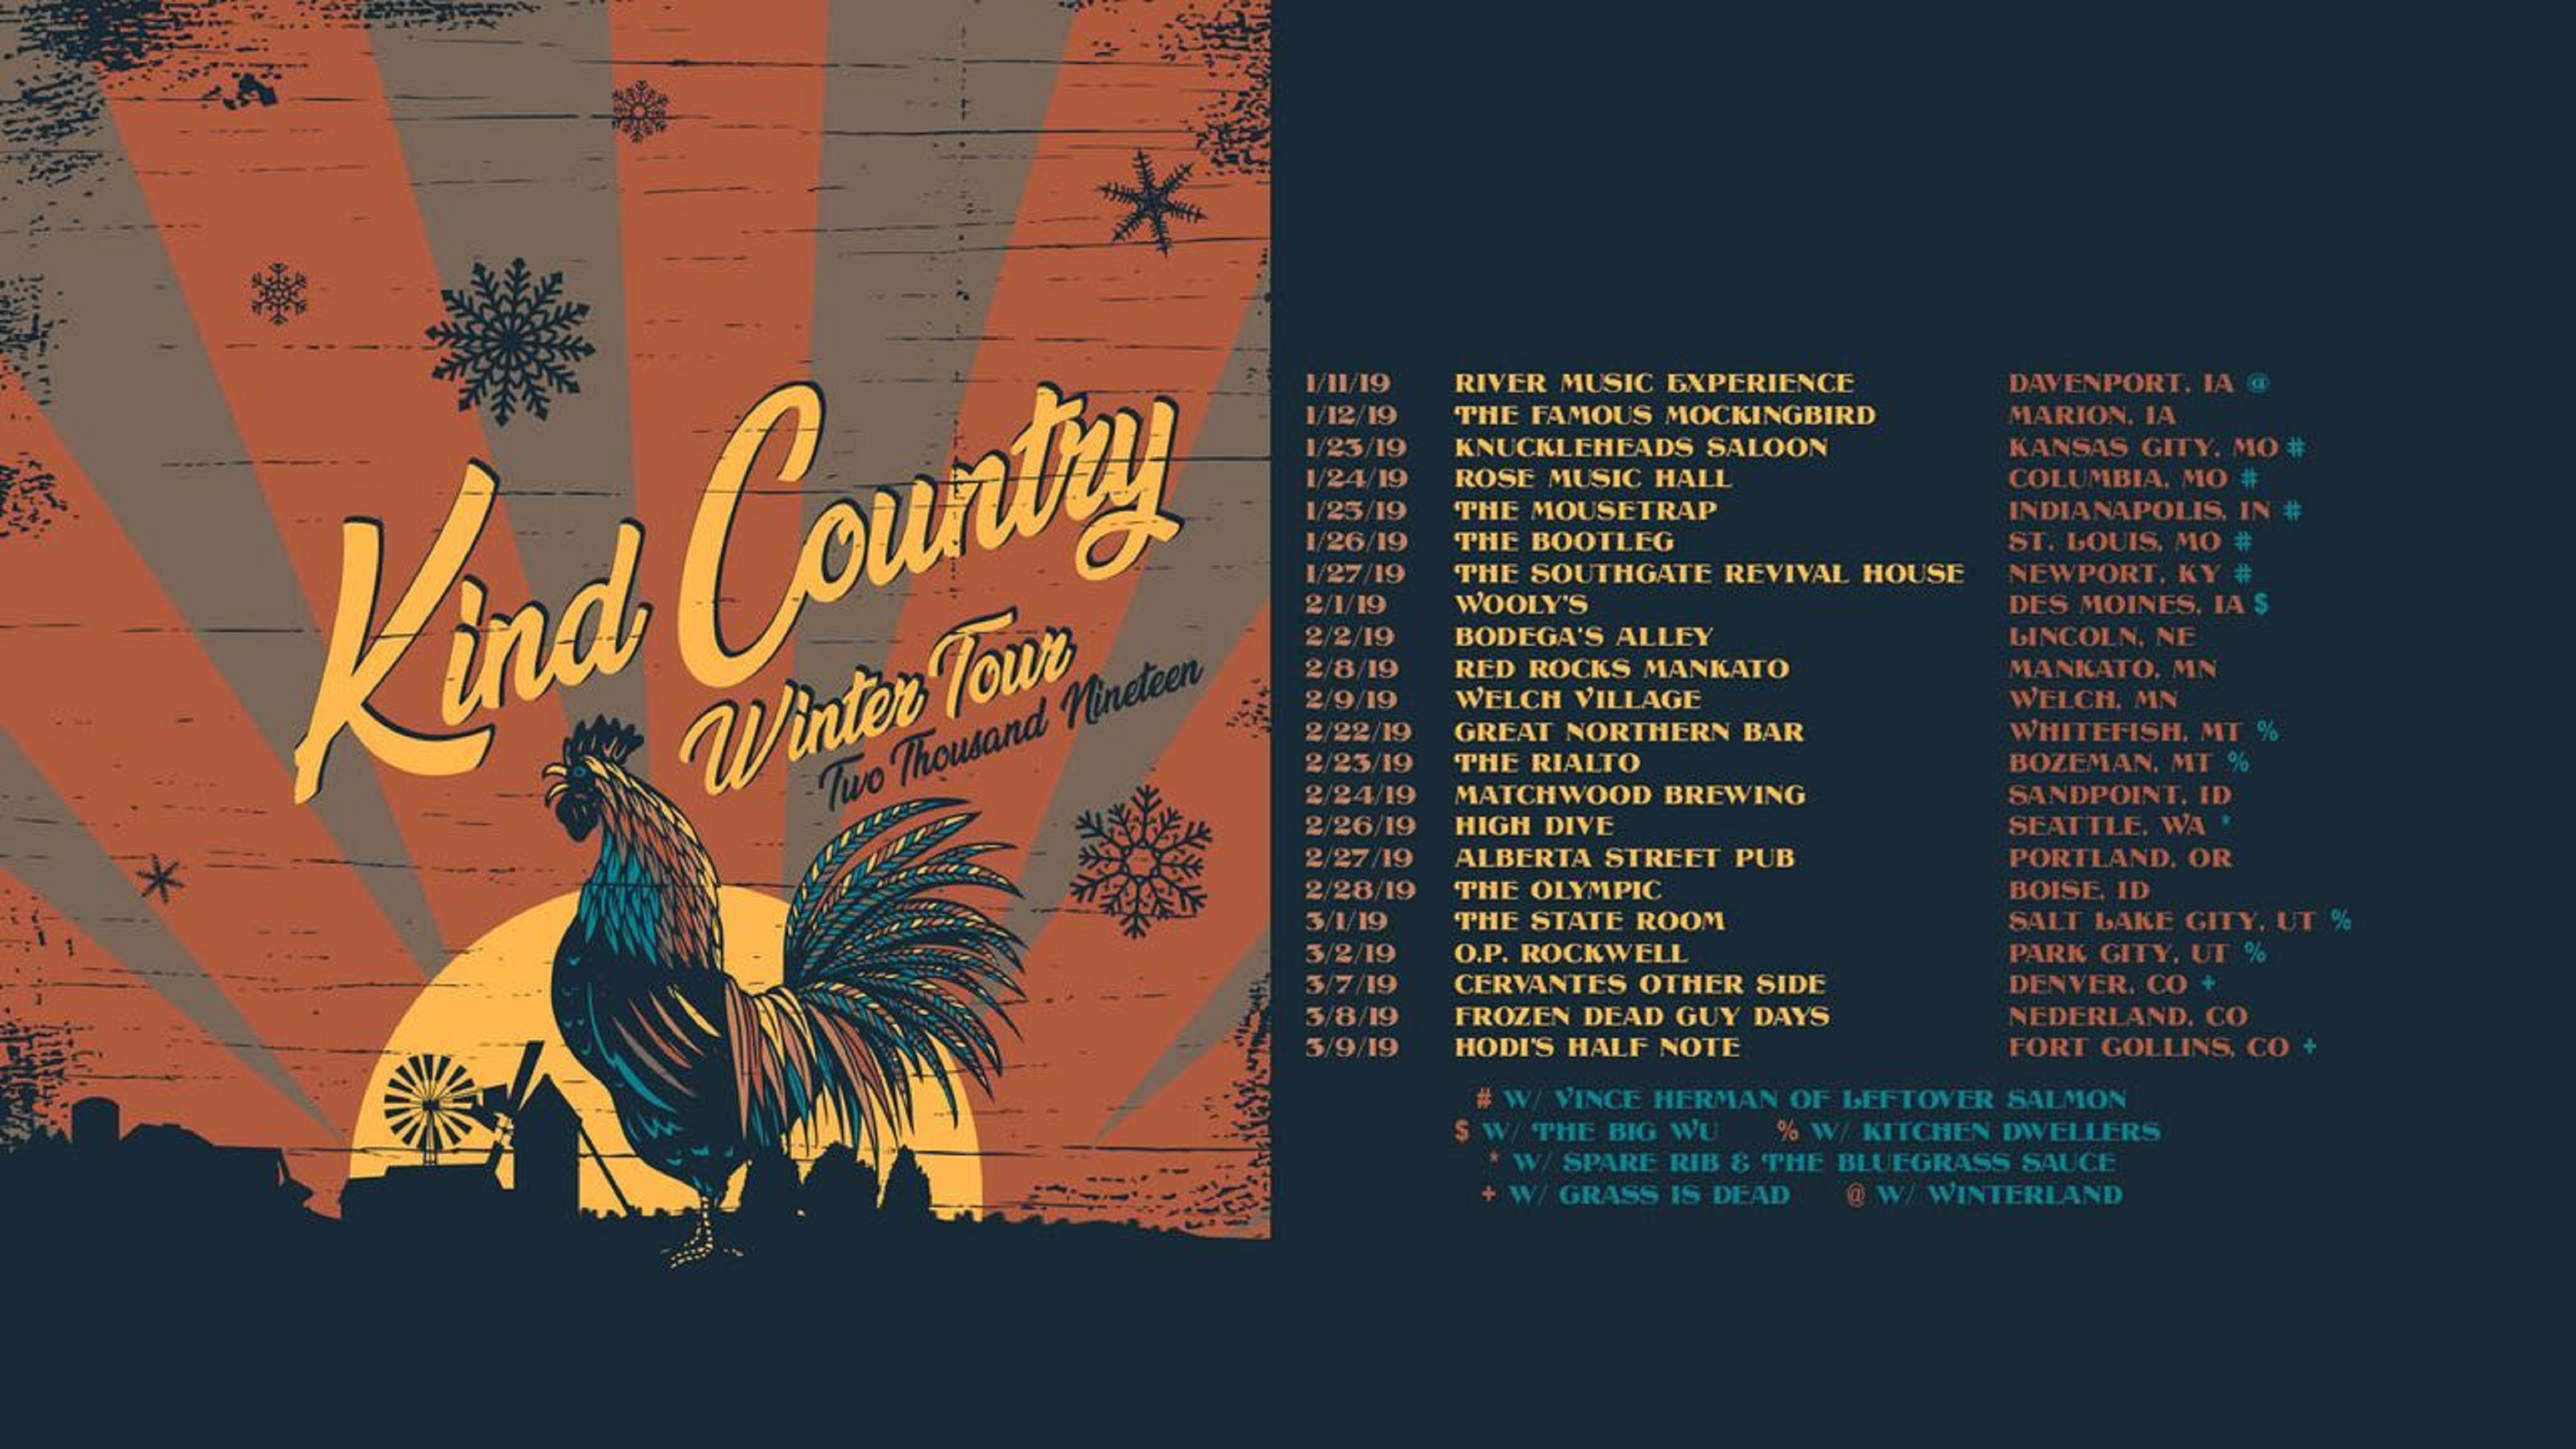 Kind Country On Their 2019 Winter Tour Now